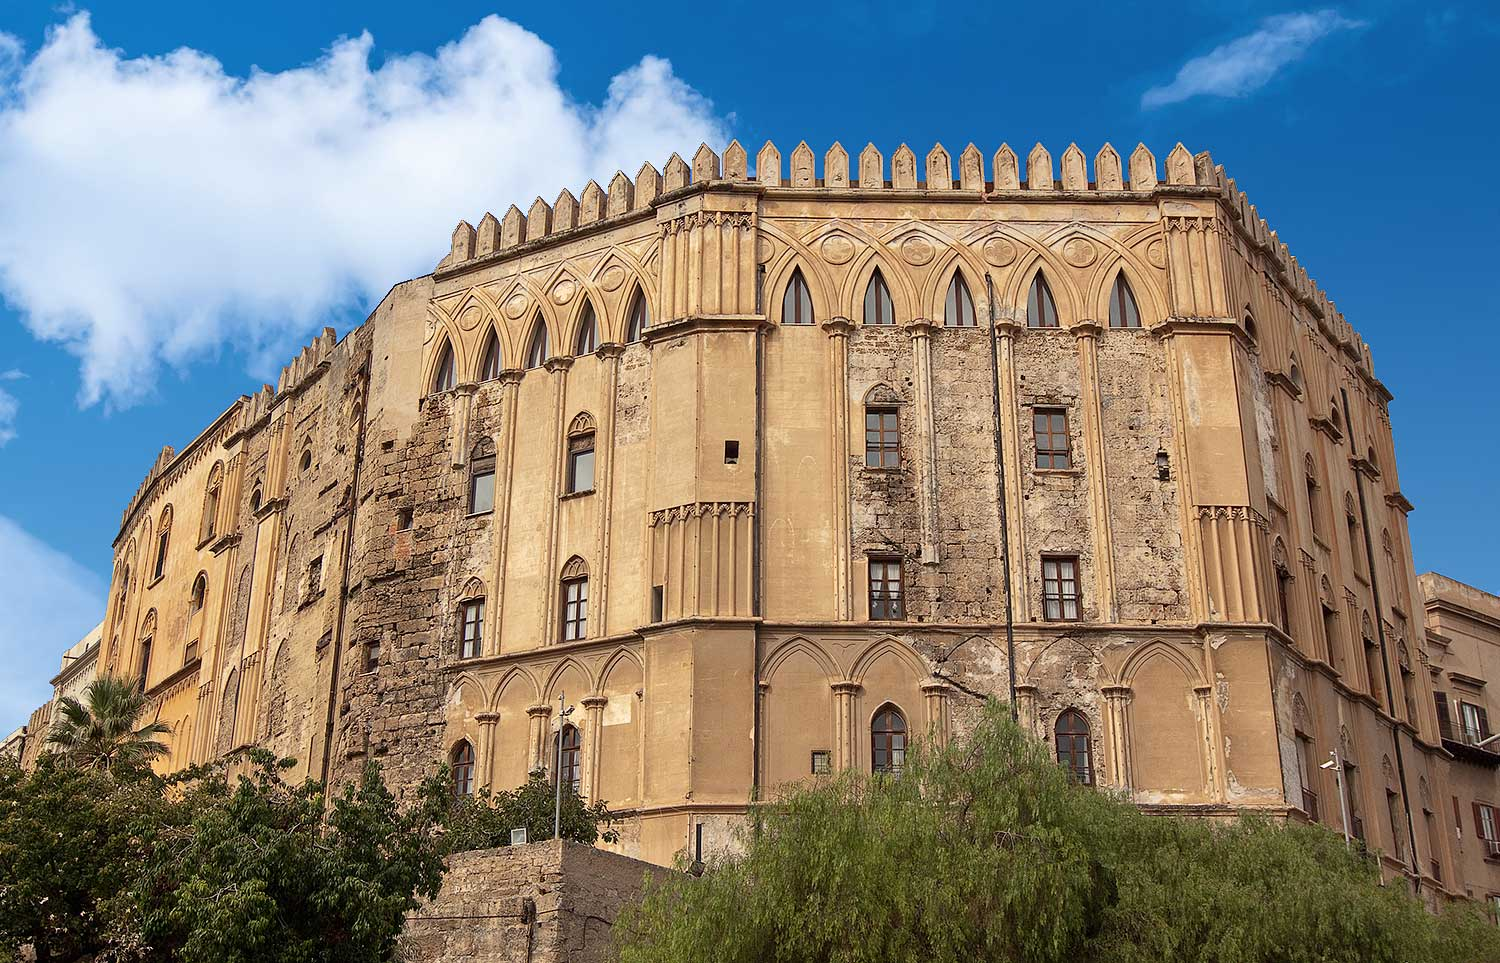 The Palazzo dei Normanni, also known as the Palazzo reale, in Palermo